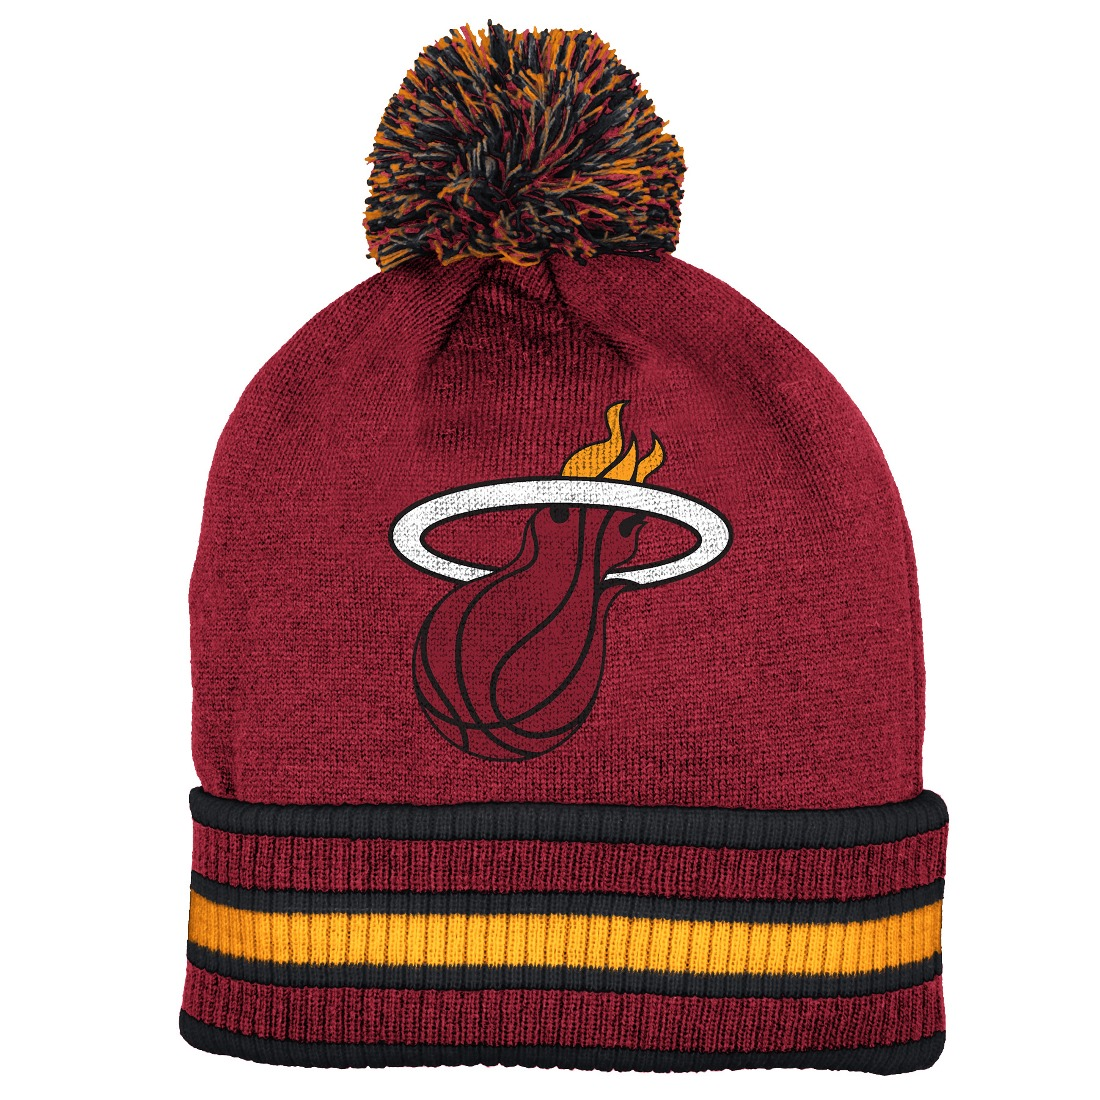 Miami Heat Adidas NBA Name & Logo Cuffed Premium Knit Hat w  Pom by Adidas